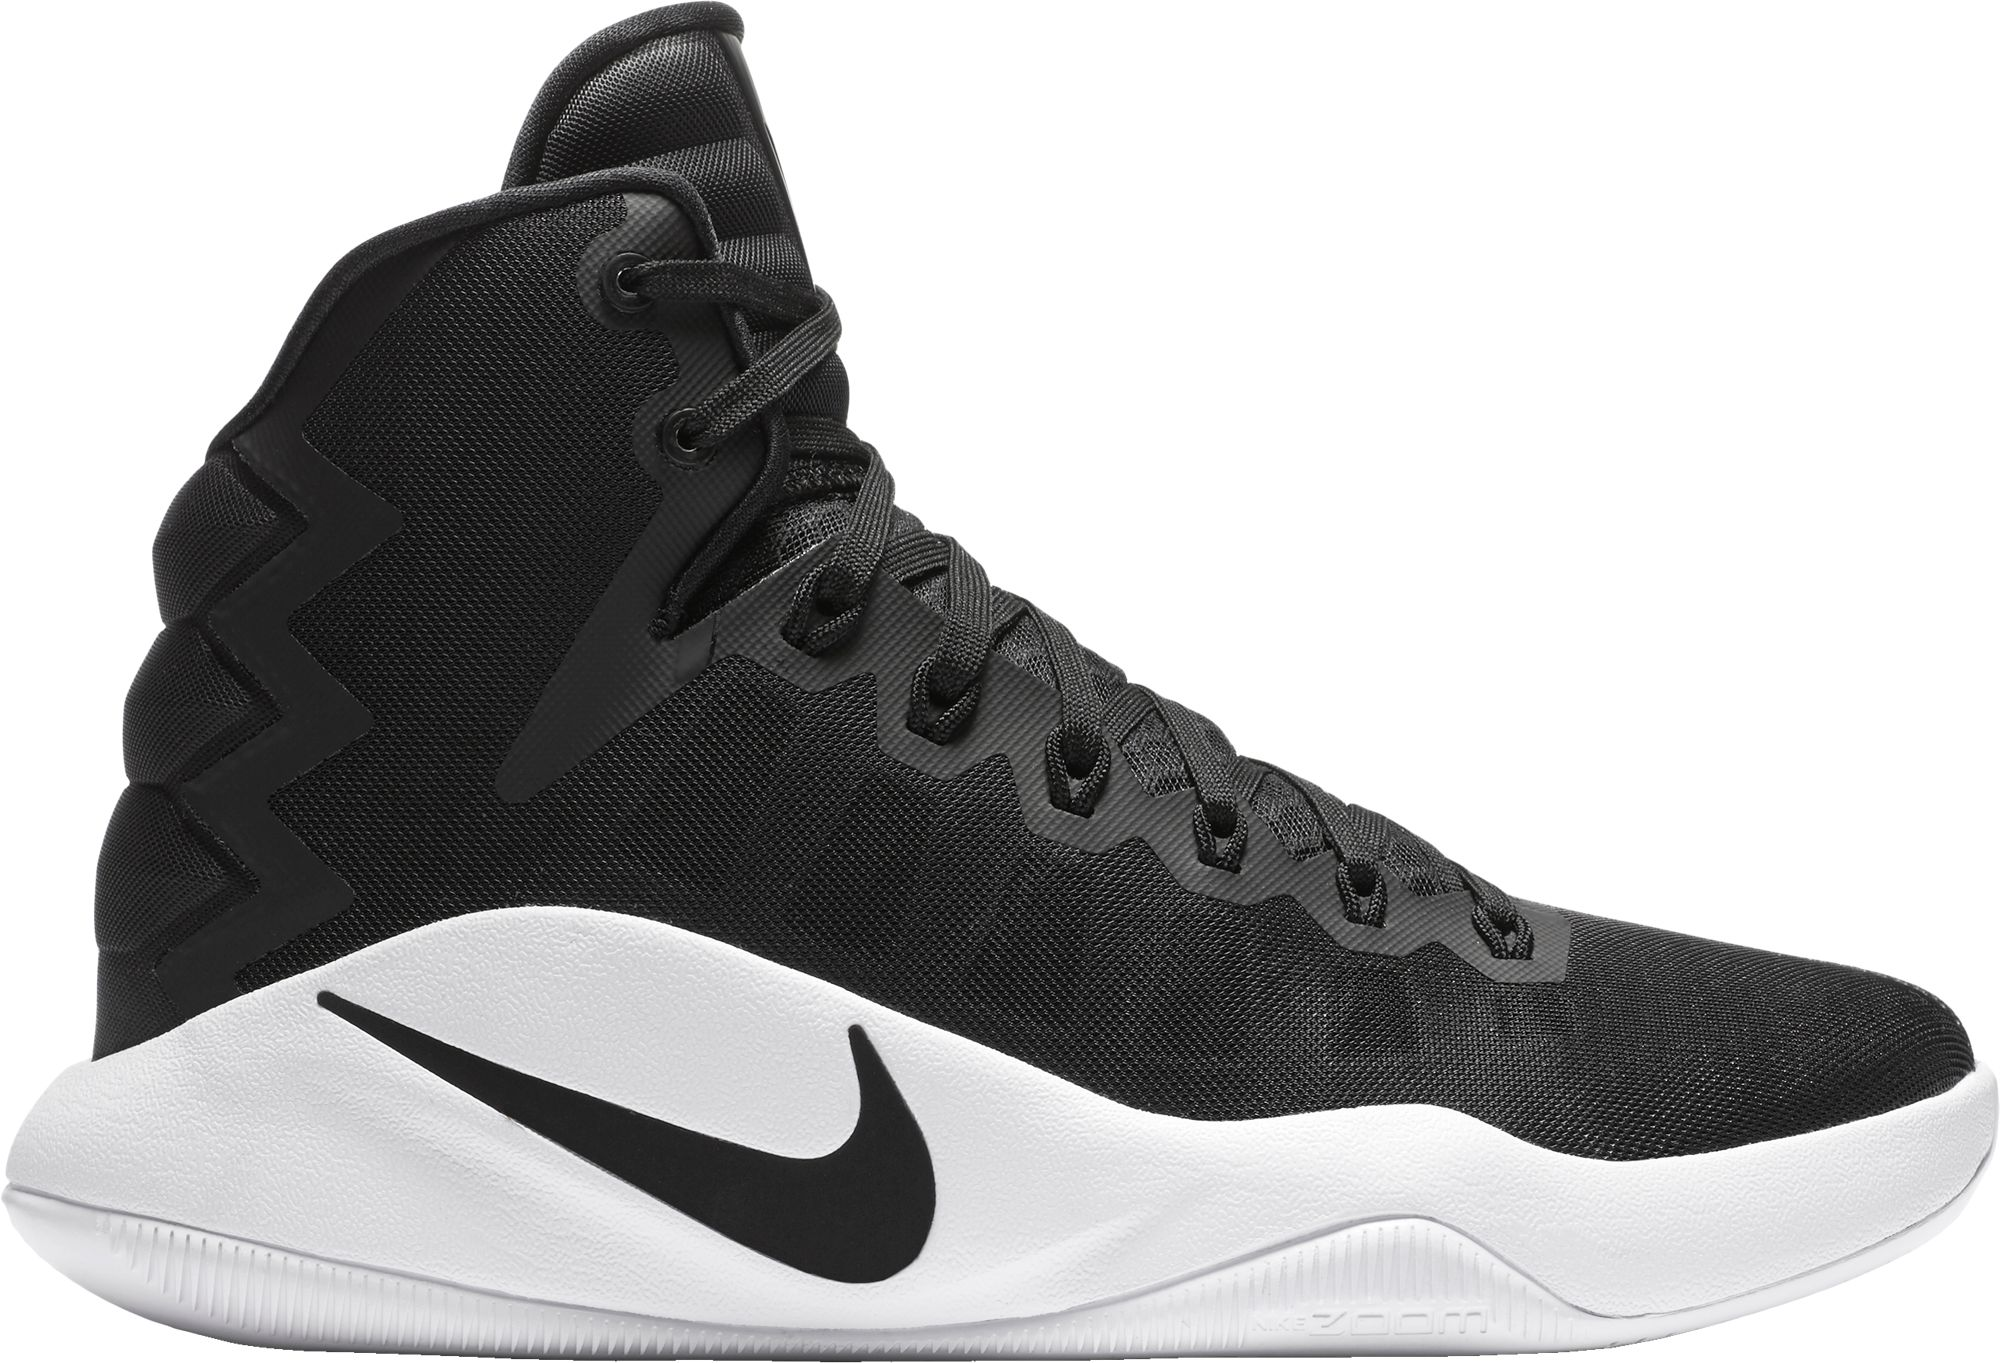 Women's Basketball Shoes | DICK'S Sporting Goods